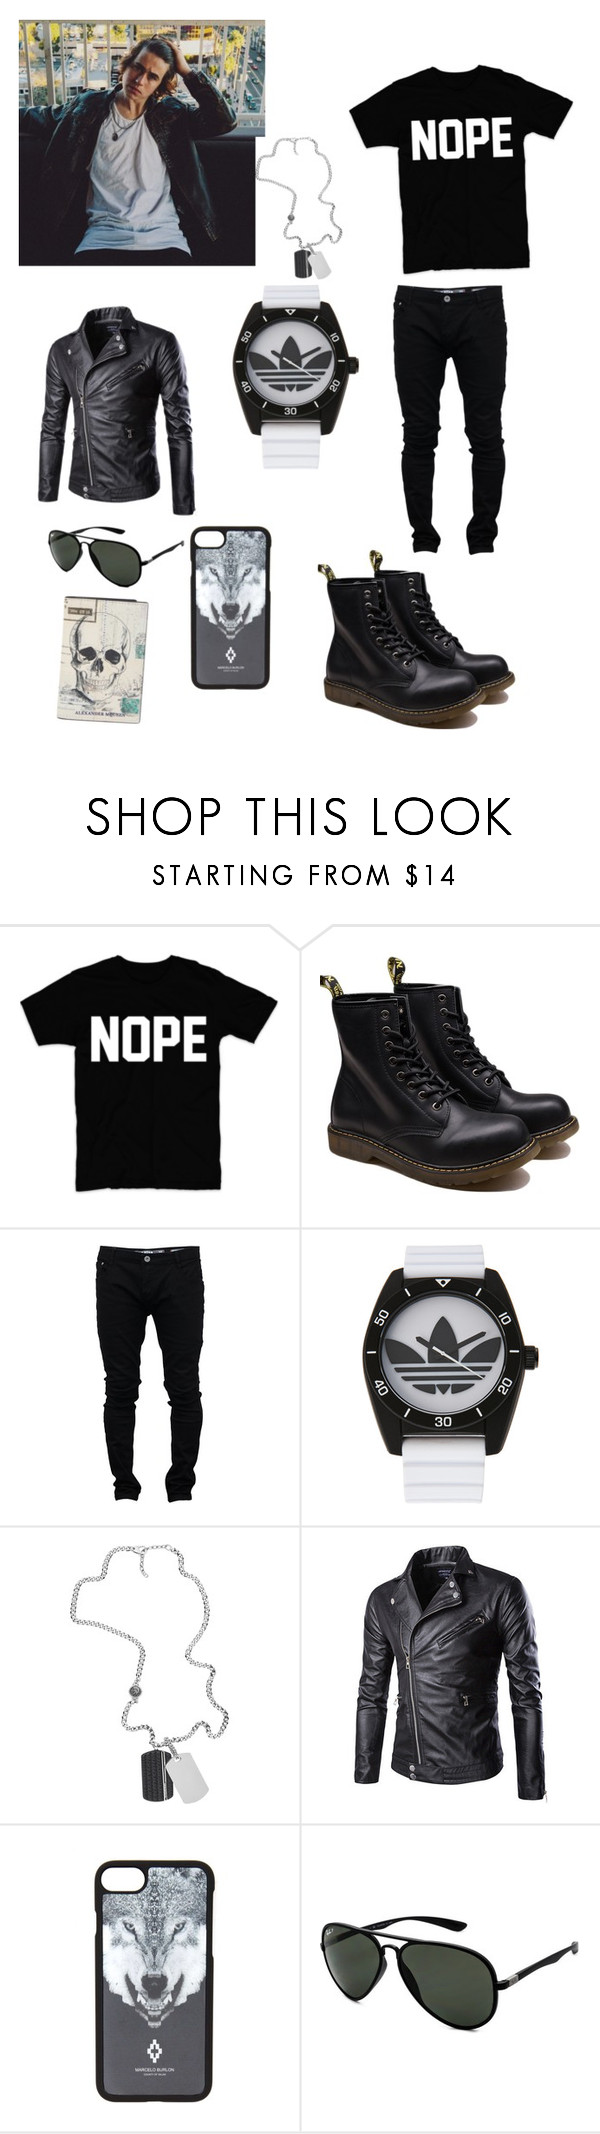 """ottd"" by angelsdevildes ❤ liked on Polyvore featuring Soul Star, adidas, Diesel, Marcelo Burlon, Ray-Ban, Alexander McQueen, men's fashion and menswear"